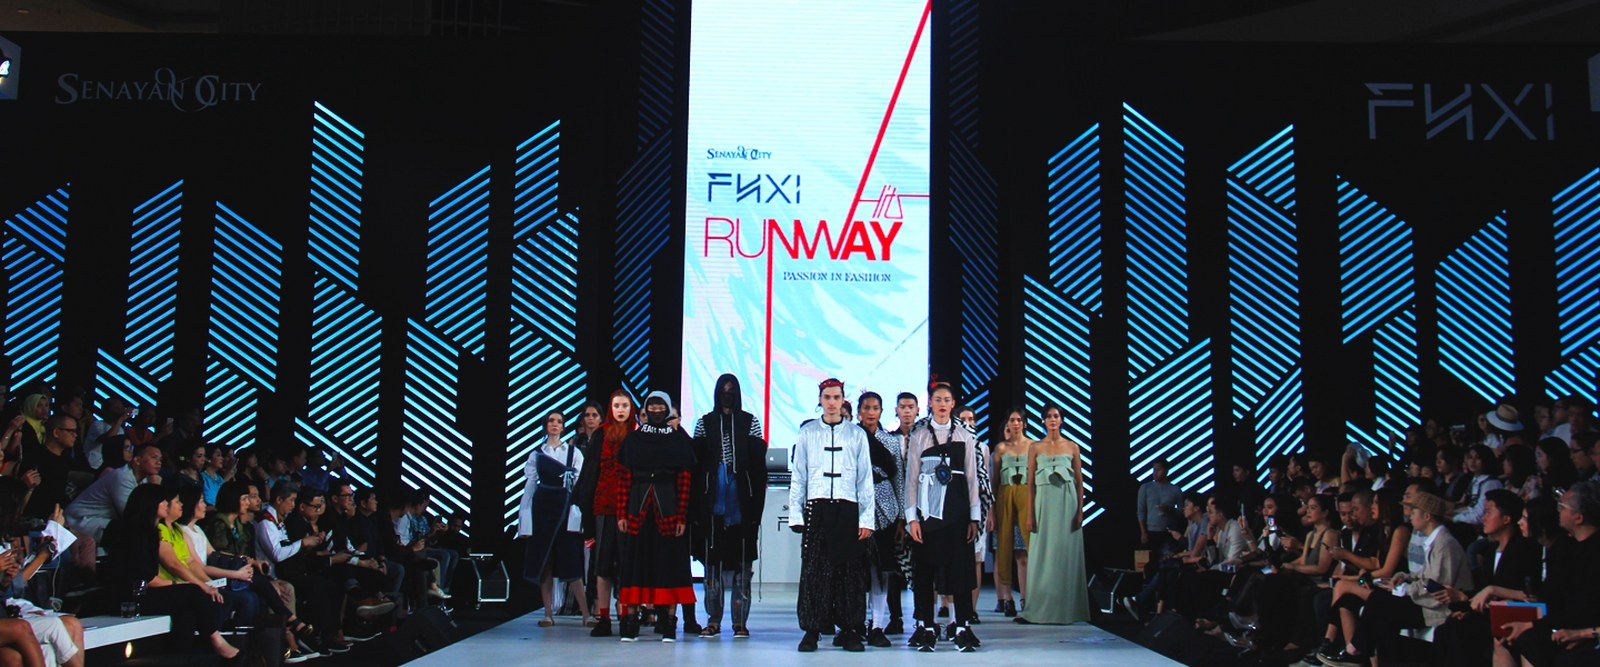 3e9a482a7c RUNWAY HITS HIGHLIGHT YOUNG & EMERGING INDONESIAN DESIGNERS. PRESS RELEASE.  07 Agustus 2017, by SenayanCity